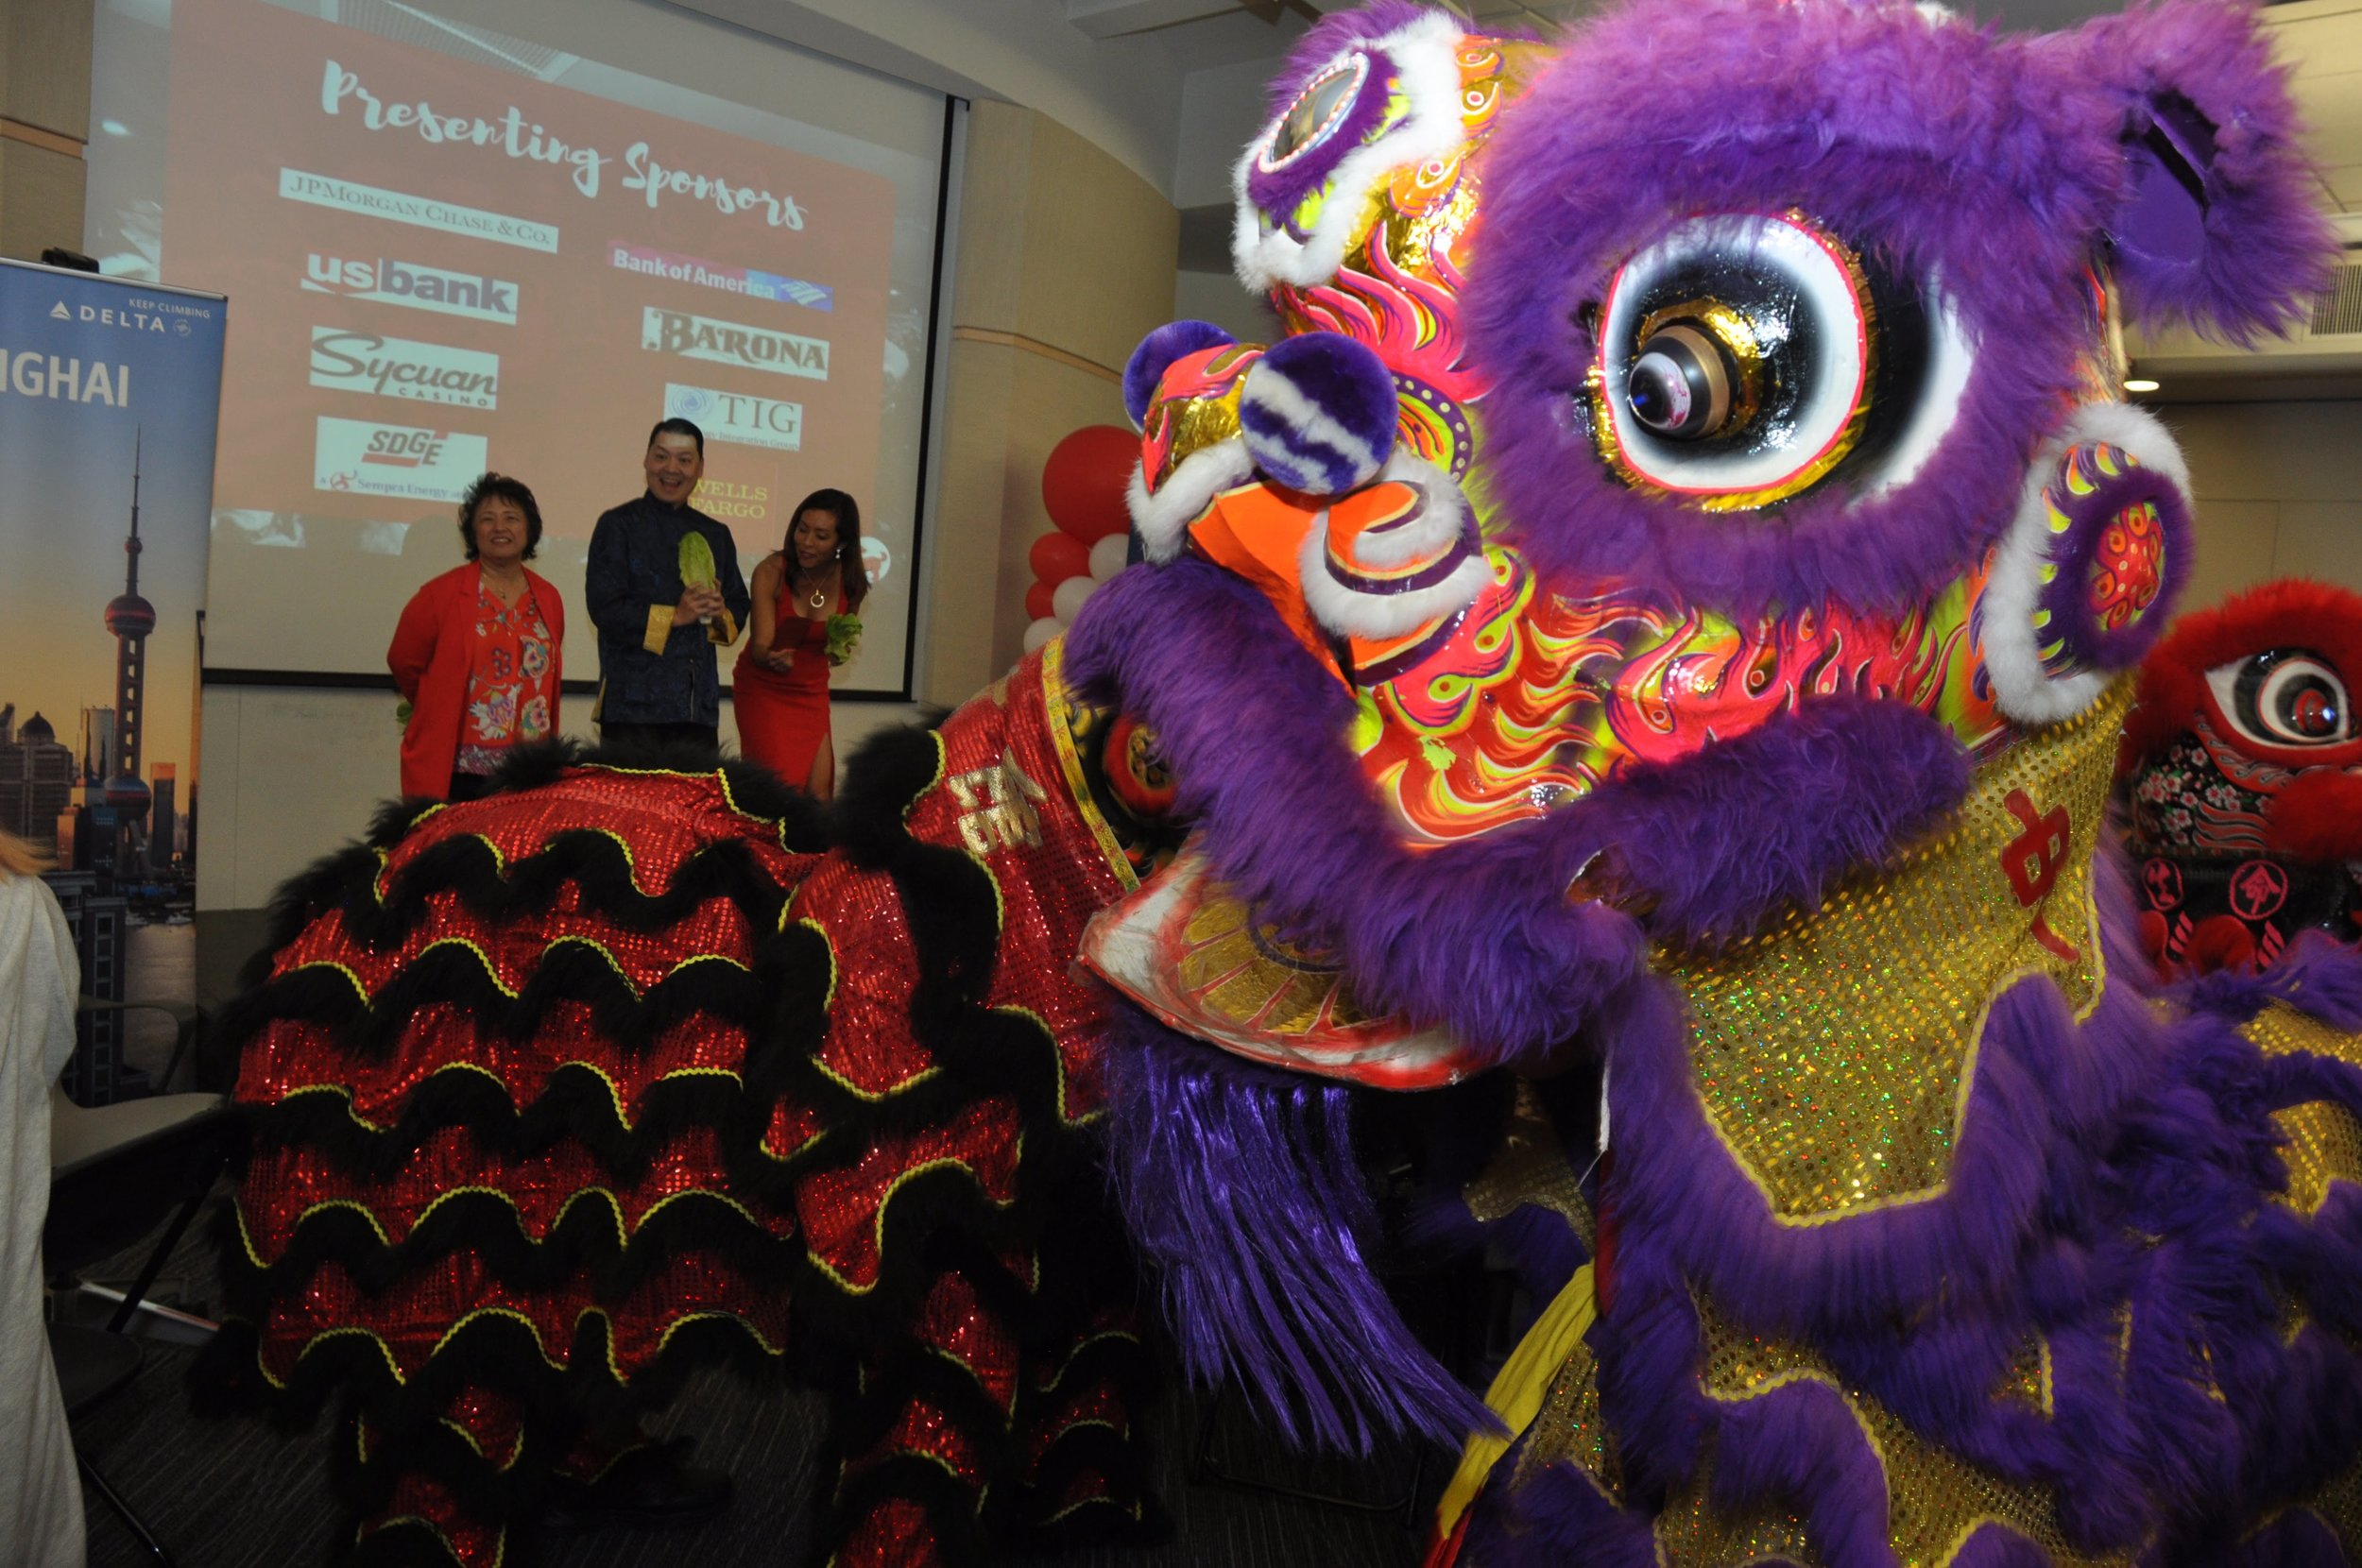 It is the year of the dog in 2018. A special lion dance performances kicked off the Chinese Lunar New Year event at the 2018 Asian Business Association's annual celebration.